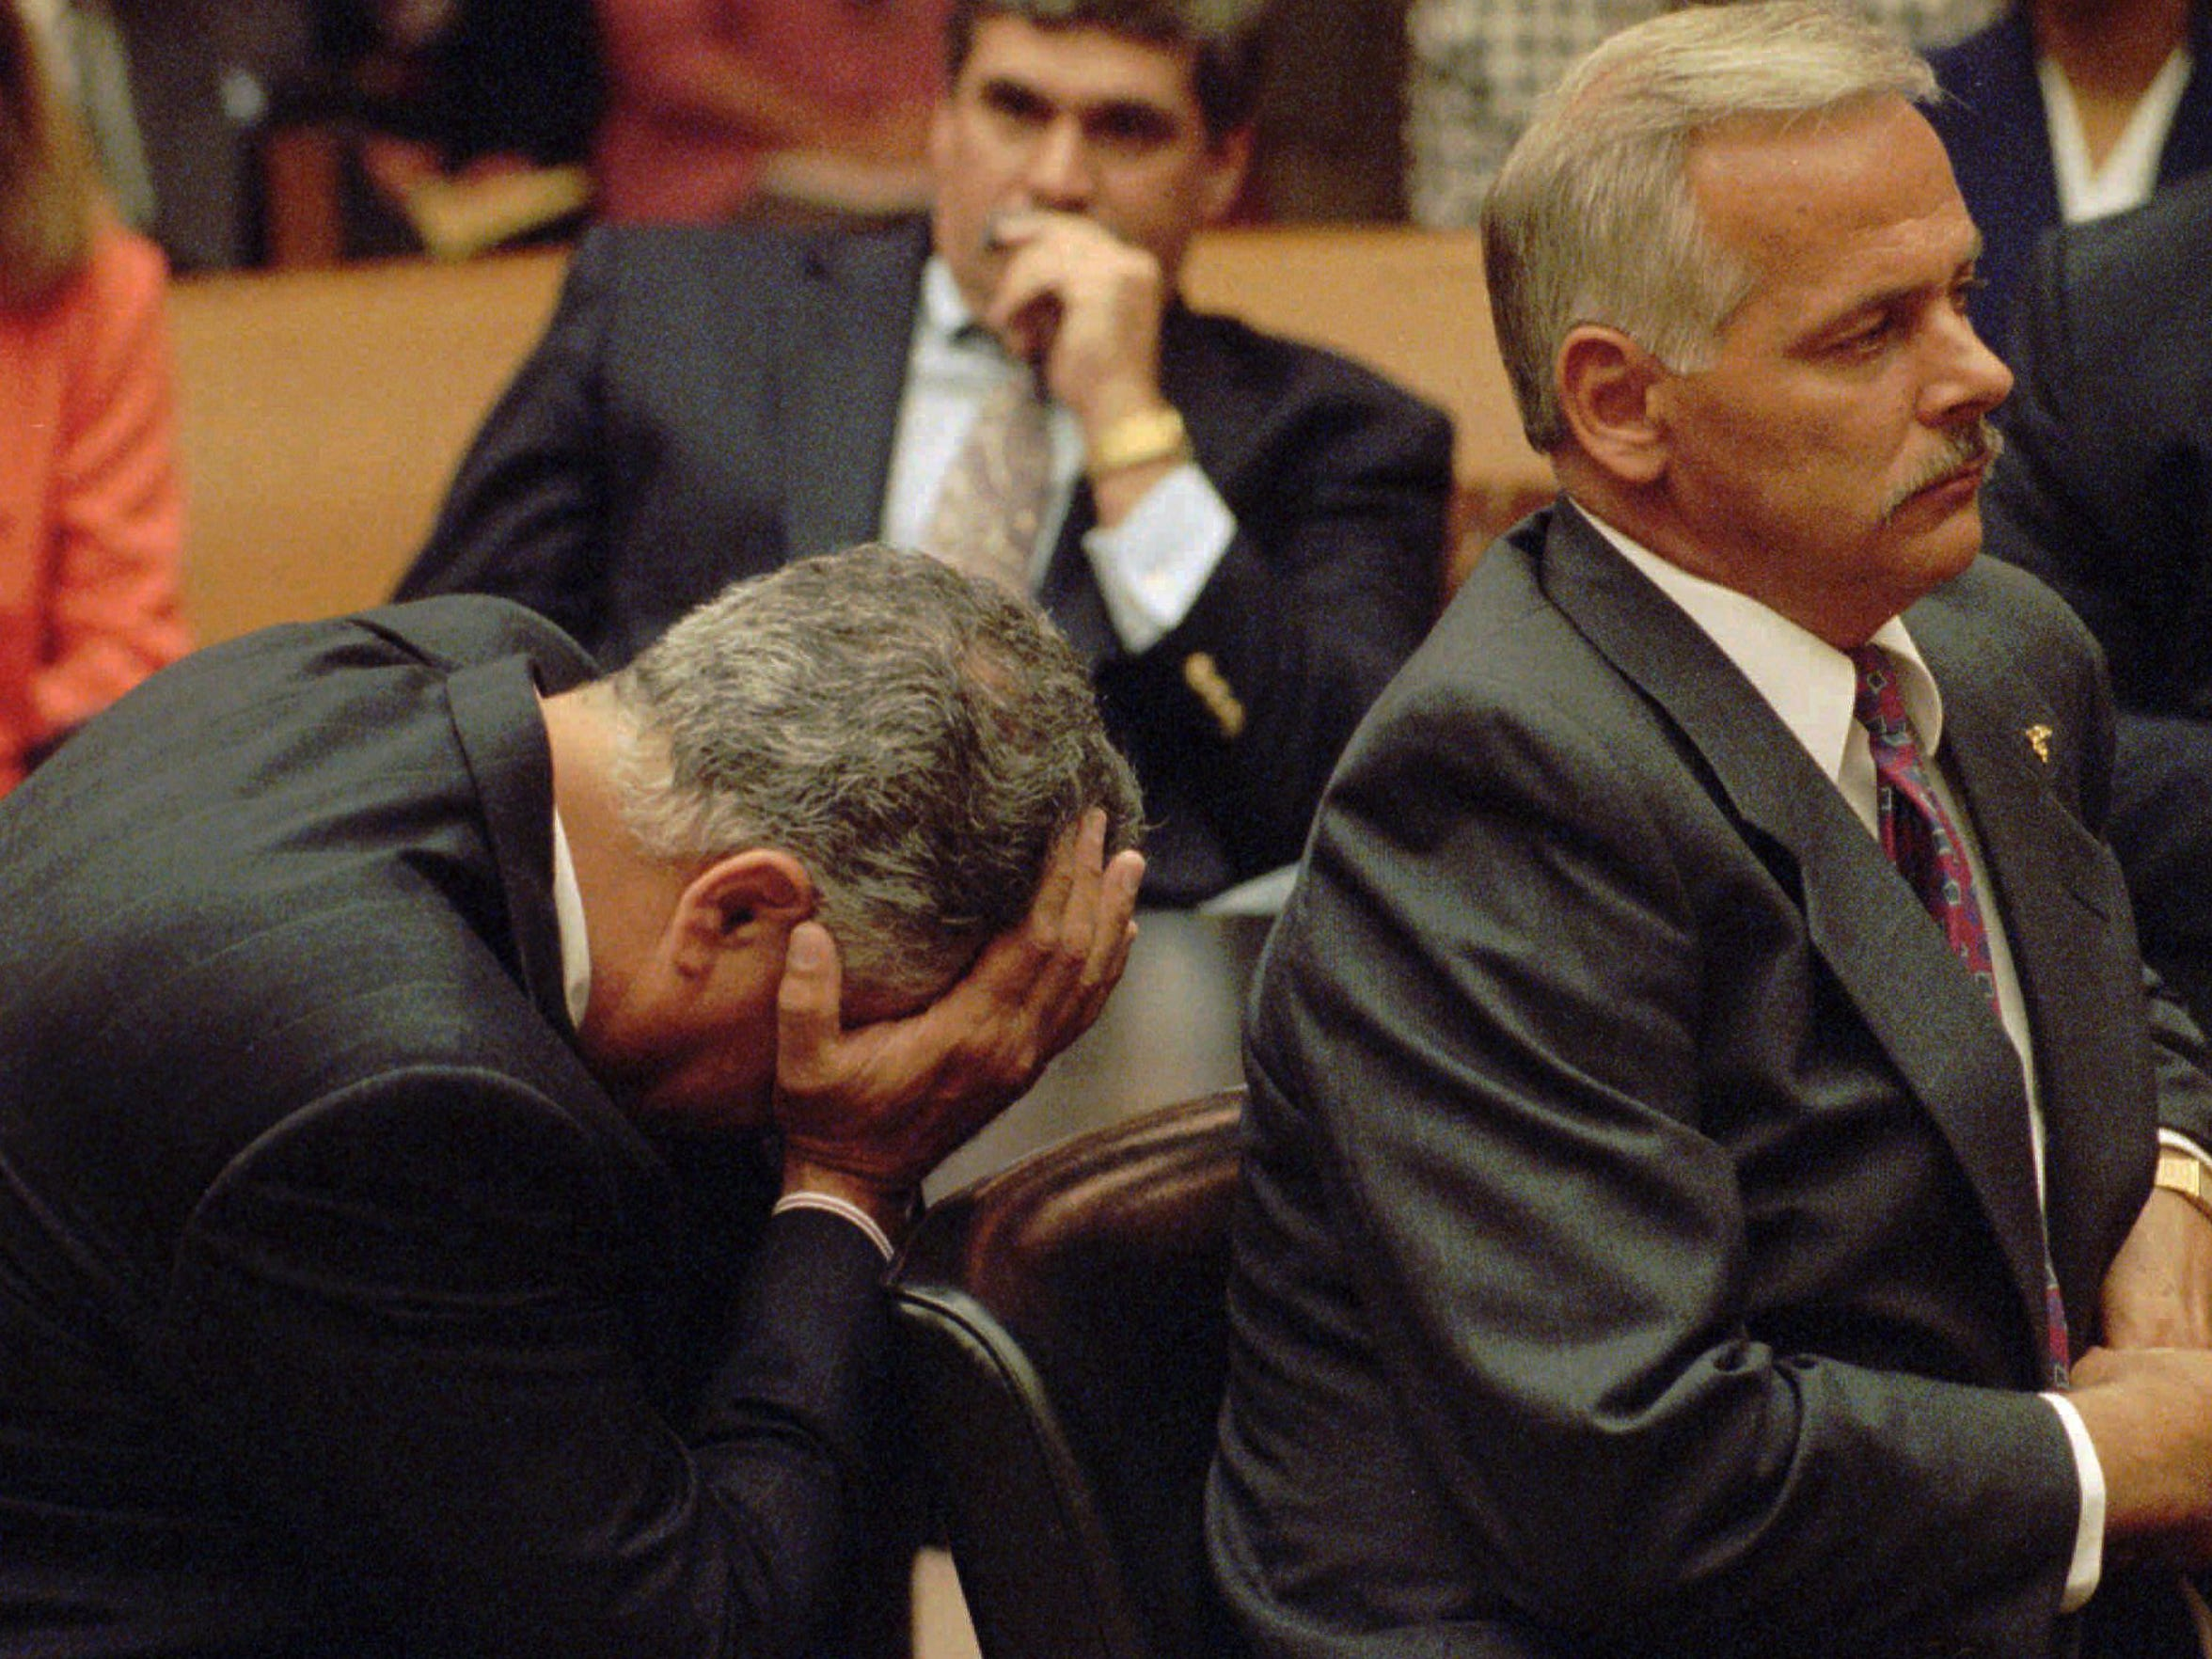 Former Detroit Police officer Larry Nevers, left, holds his face in his hands after hearing Detroit juries found him and his former partner Walter Budzyn, right, guilty of second-degree murder in 1993, in connection with the beating death of Malice Green in Detroit. The charges were later was overturned on appeal, they were re-tried seperatly and found guilty of involuntary manslaughter.